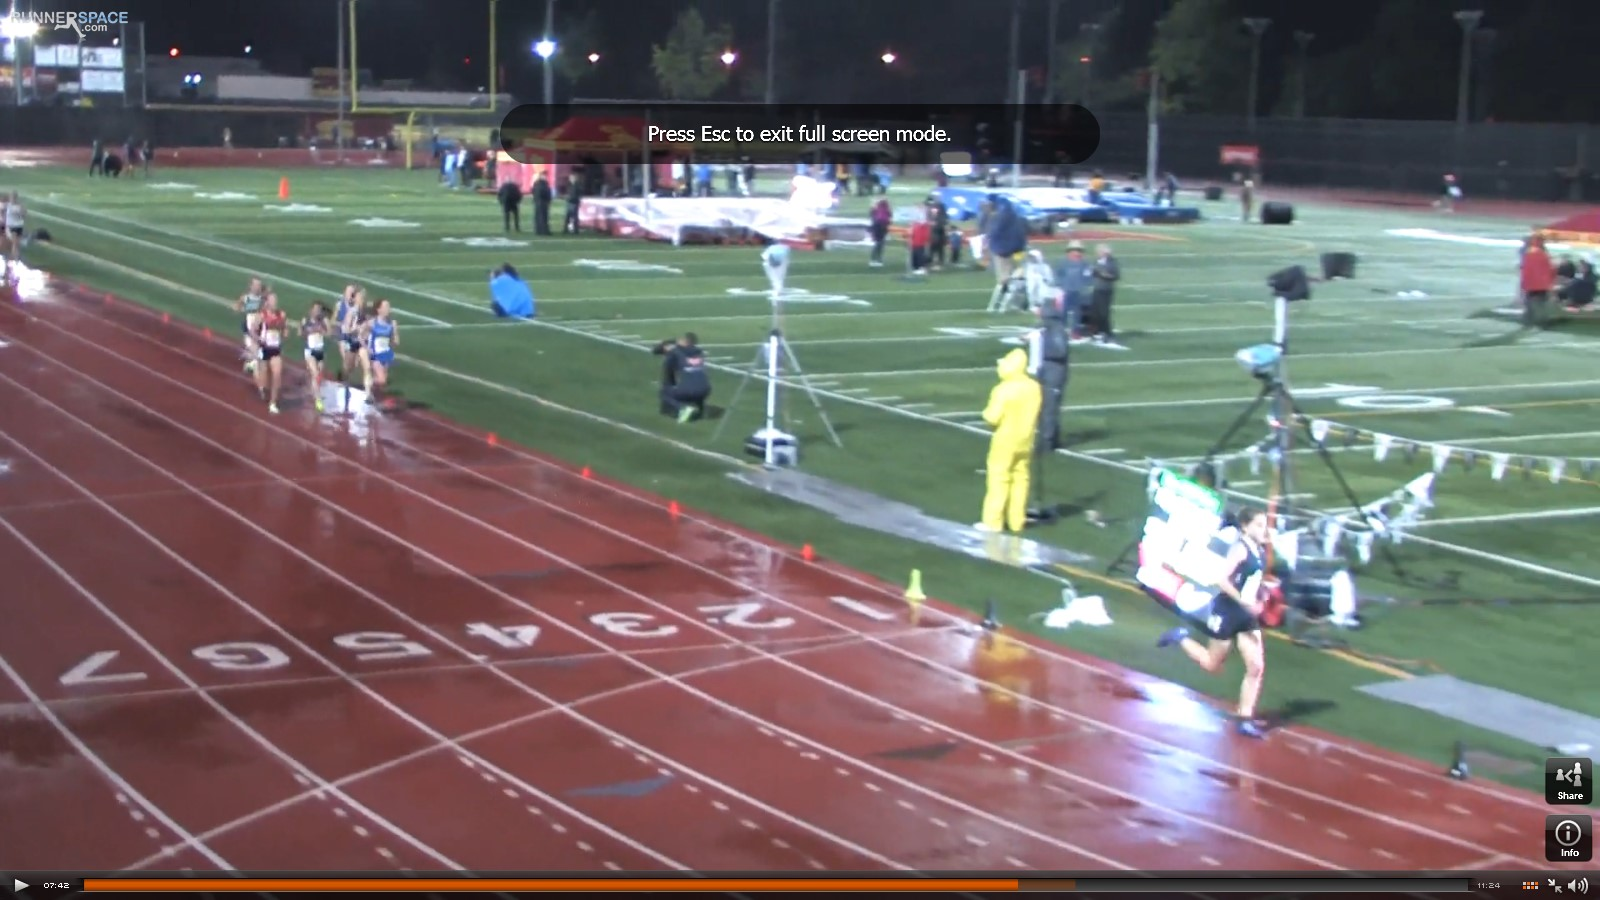 With 2 laps to go Rylee still at back of pack trailing leader, Hannah DeBalsi who would lead almost the entire race, by 15-20 meters.